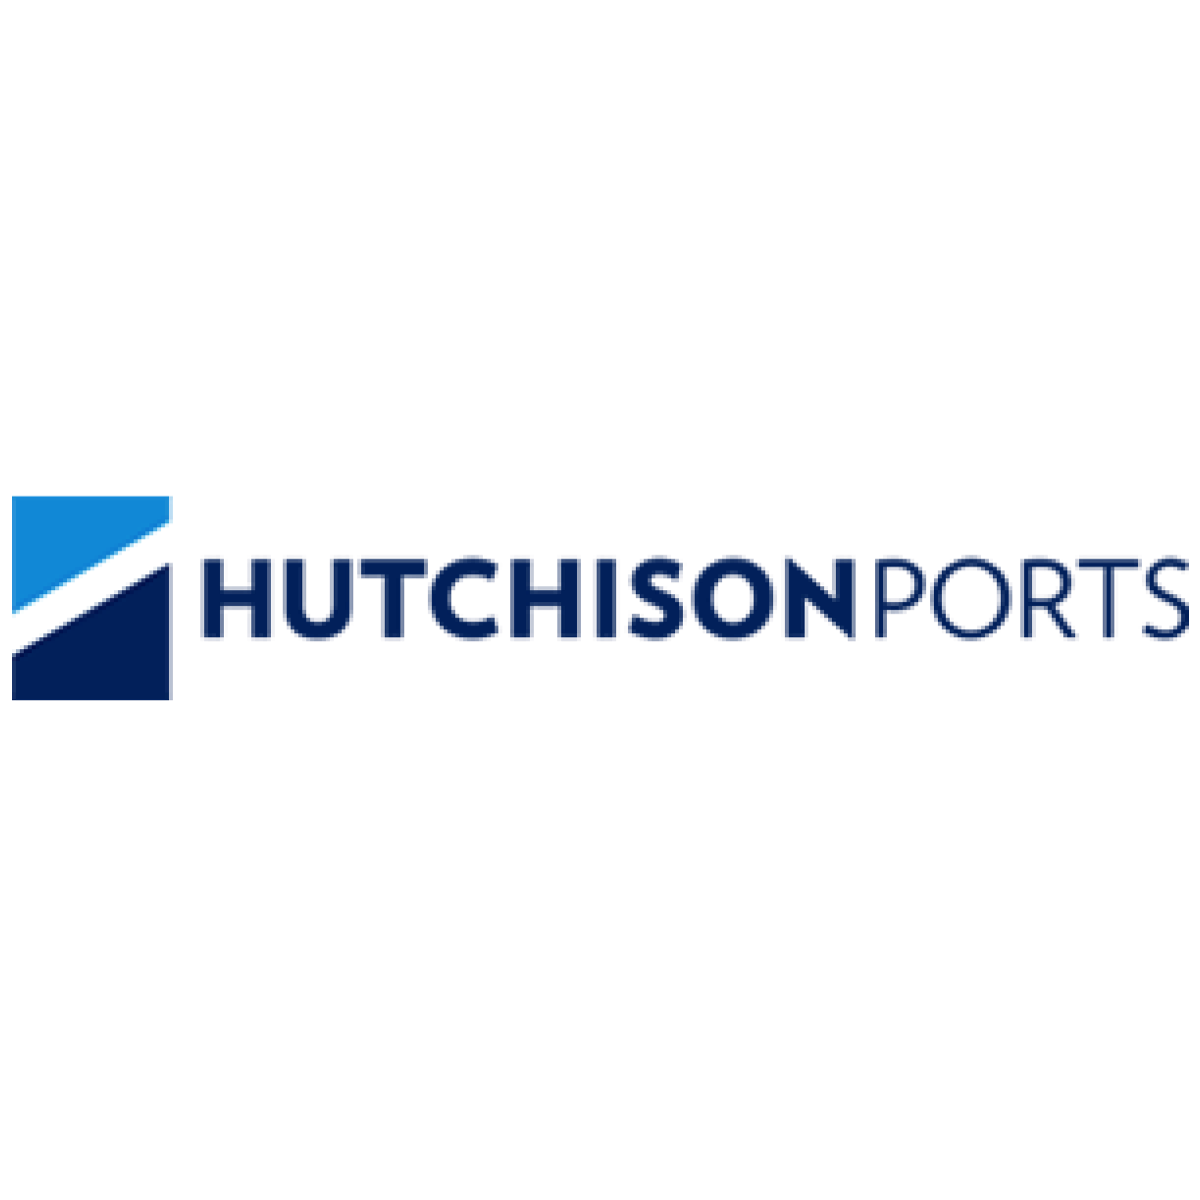 Hutchison Port Holdings Trust - OCBC Investment 2017-02-03: HK Kwai Tsing throughput recovery continues in Dec